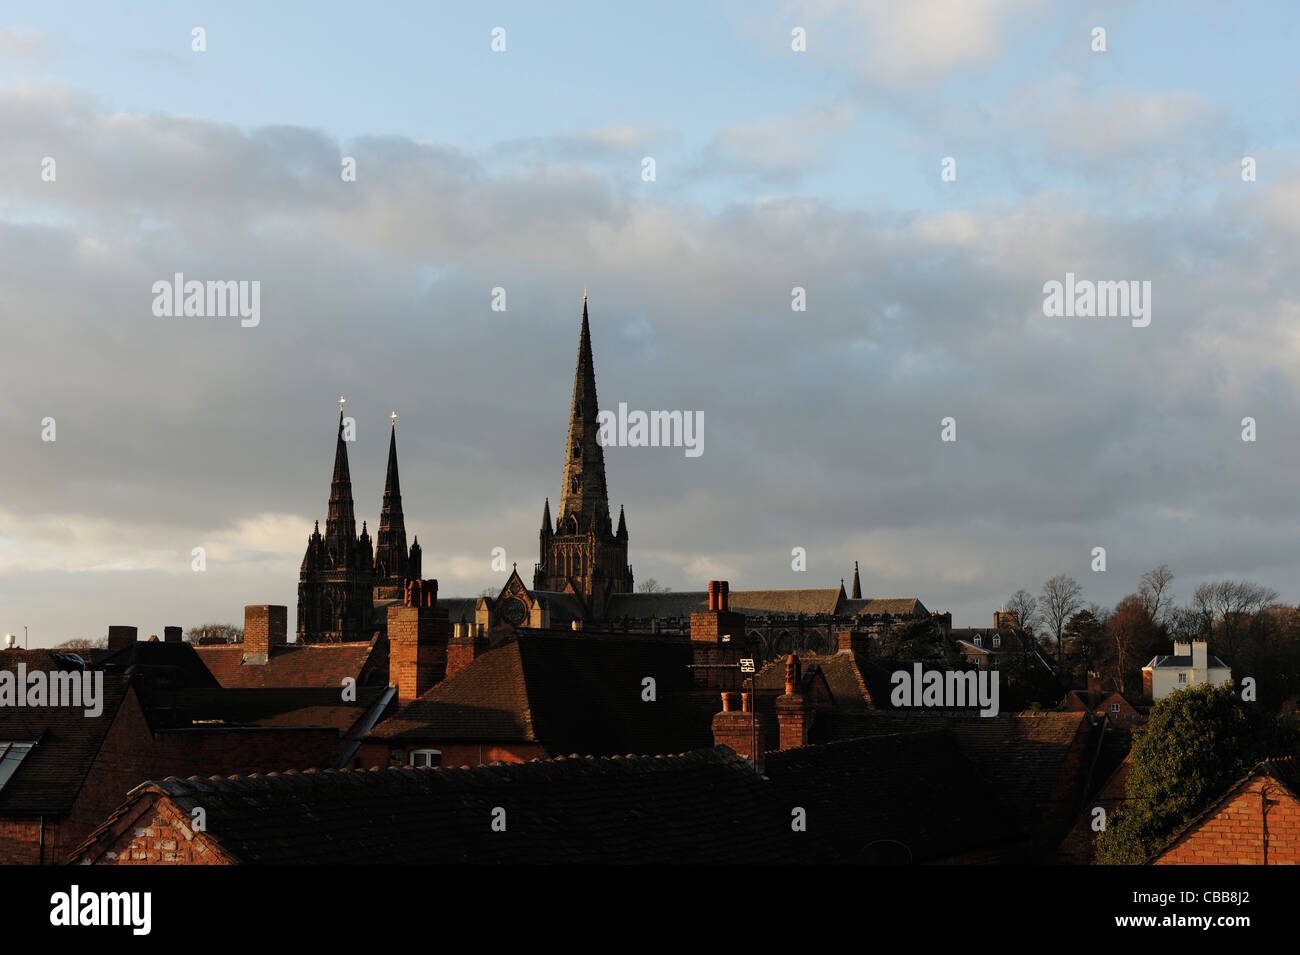 Lichfield Cathedral across rooftops - Stock Image